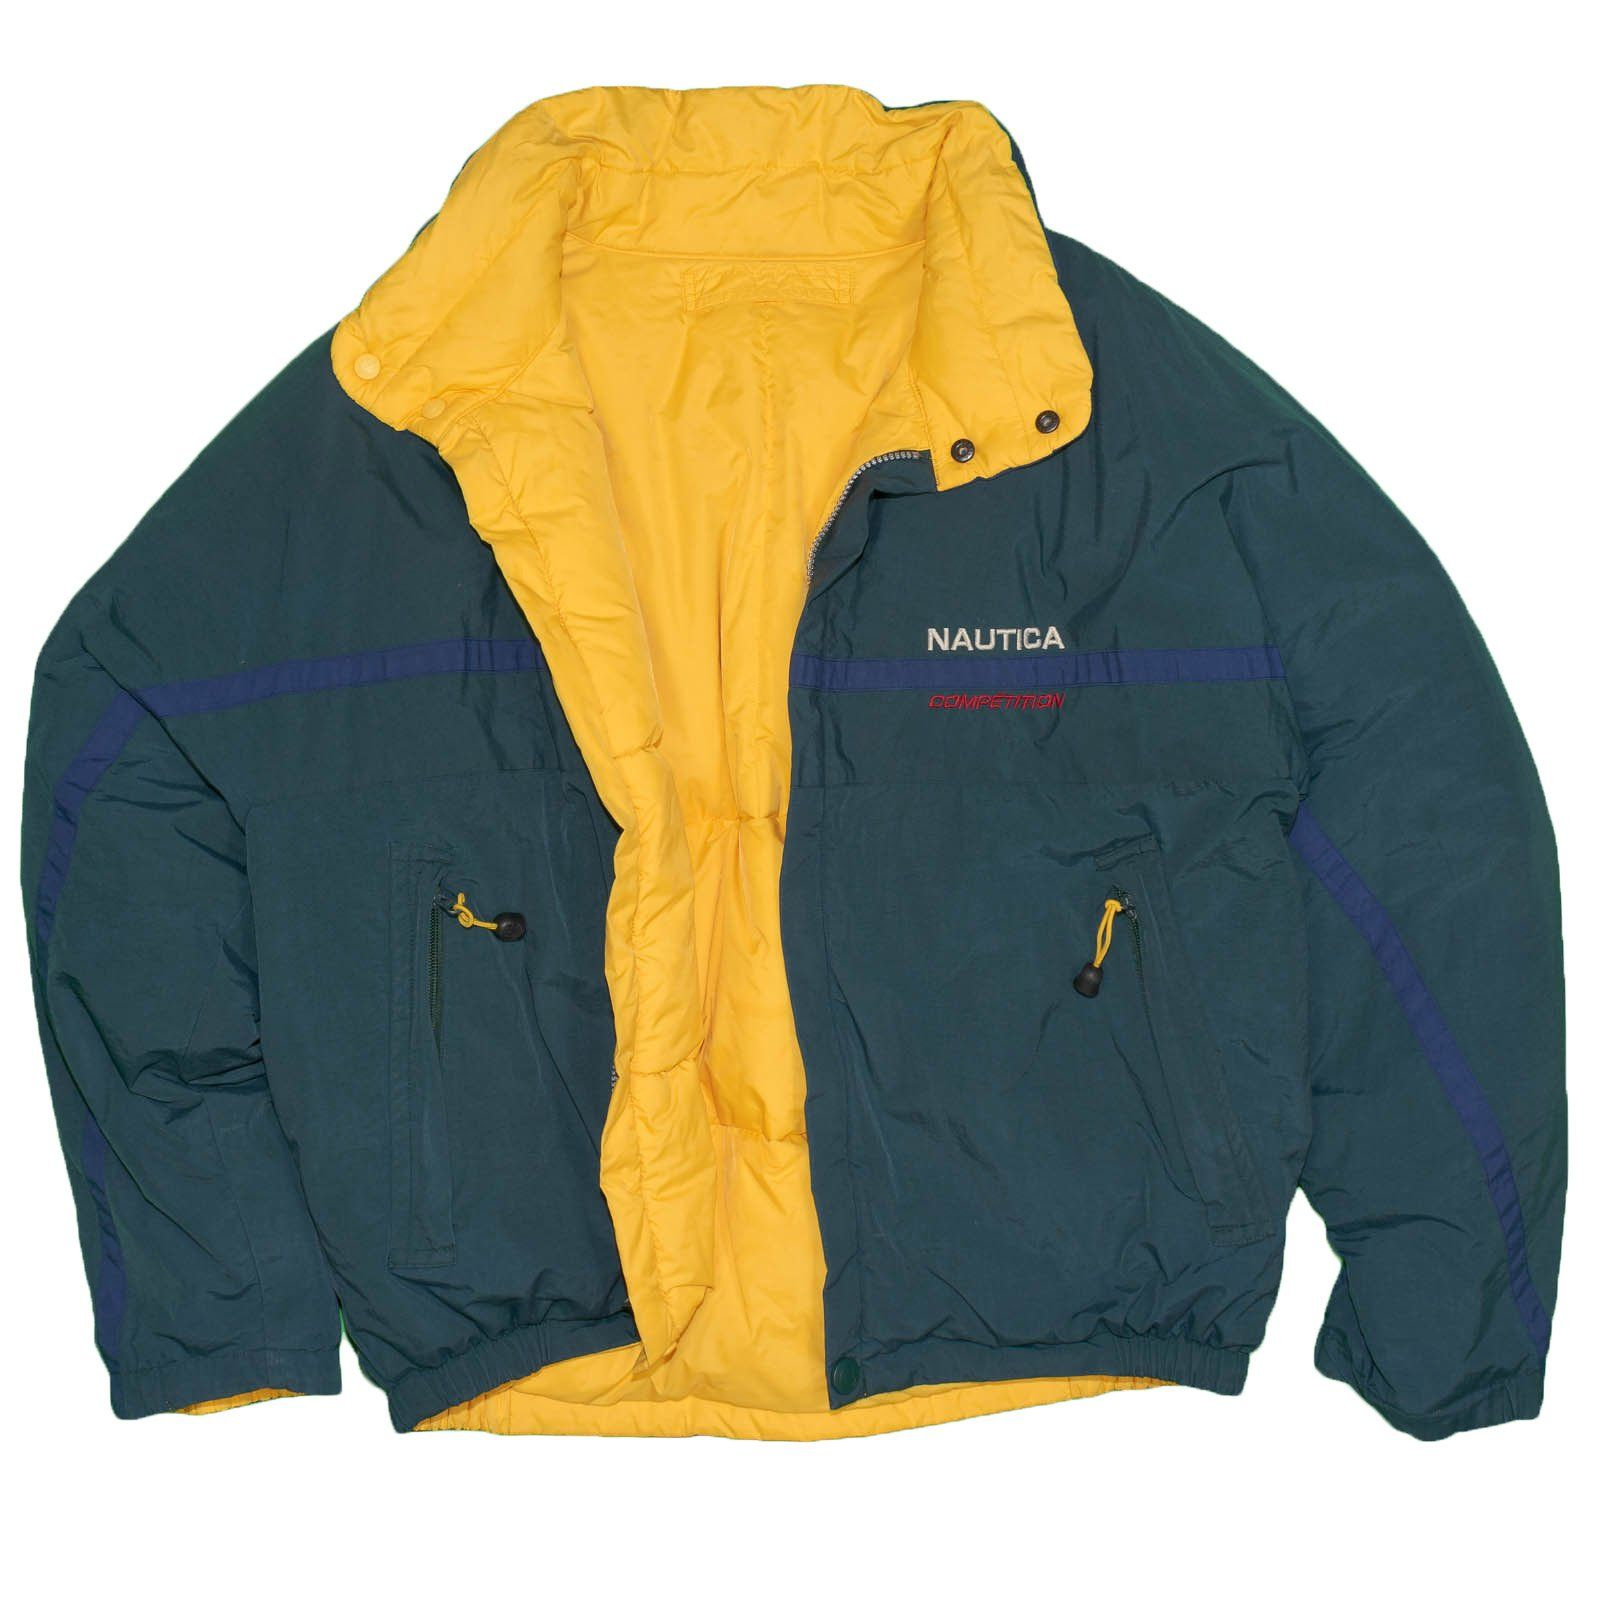 Nautica Competition Men S Jacket Large Vintage 100 Duck Down 1990 S R Itisvintage Nautica 1990s Puffer Mens Jackets Usa Shirt Vintage Clothing For Sale